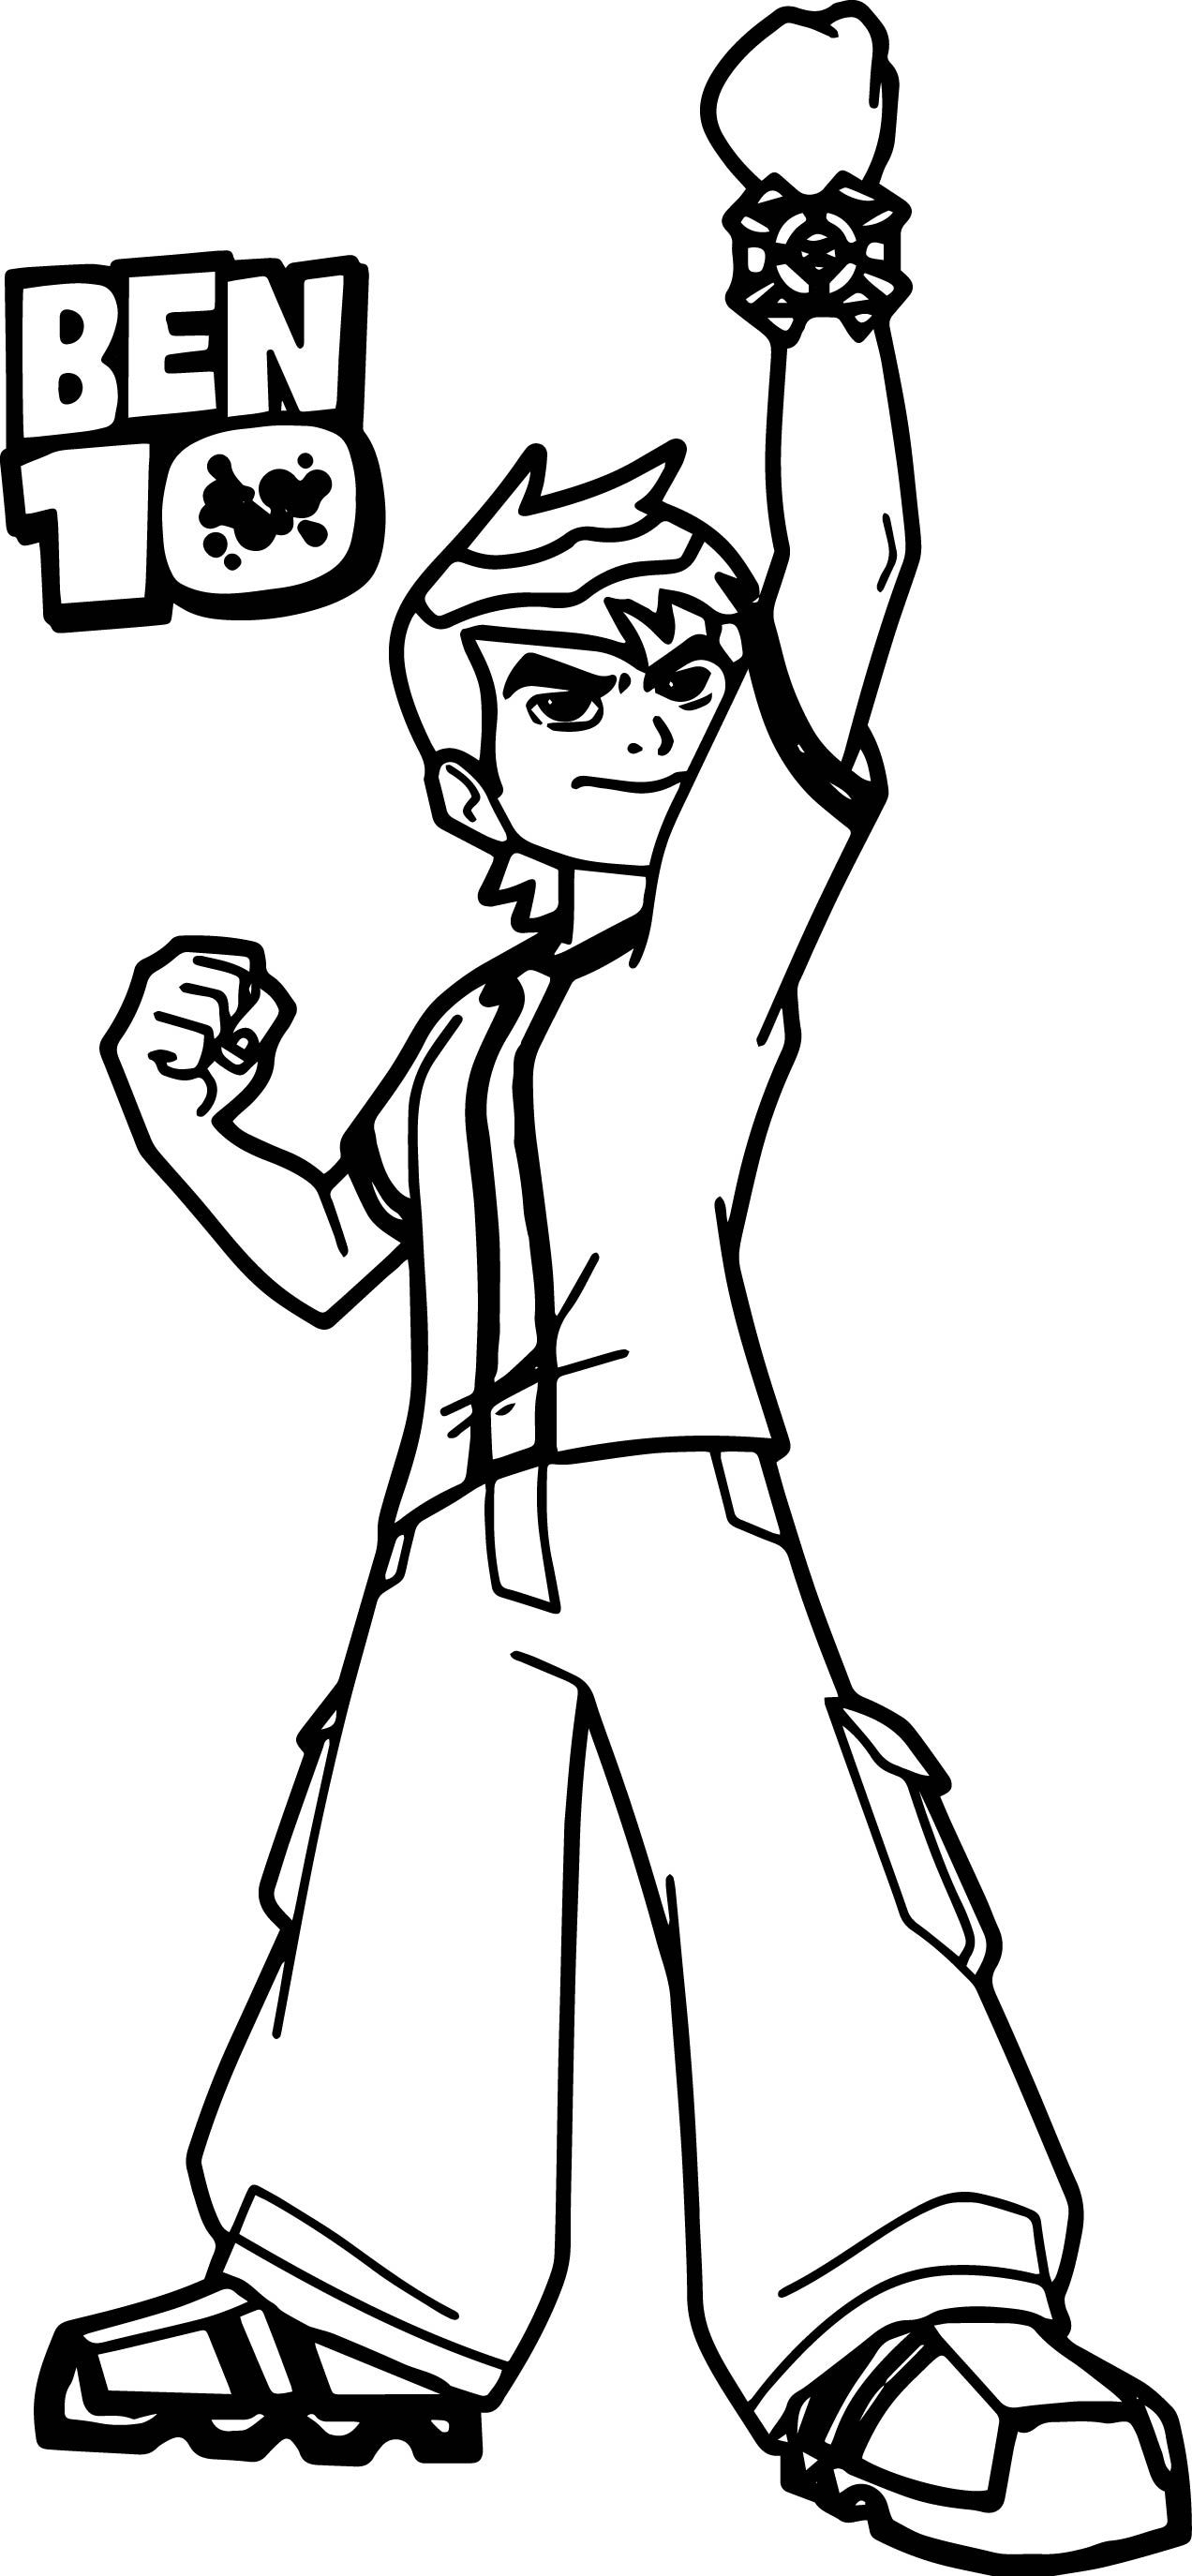 Awesome Ben Ten Ben 10 Win Coloring Page Coloring Pages Color Coloring Pages For Boys